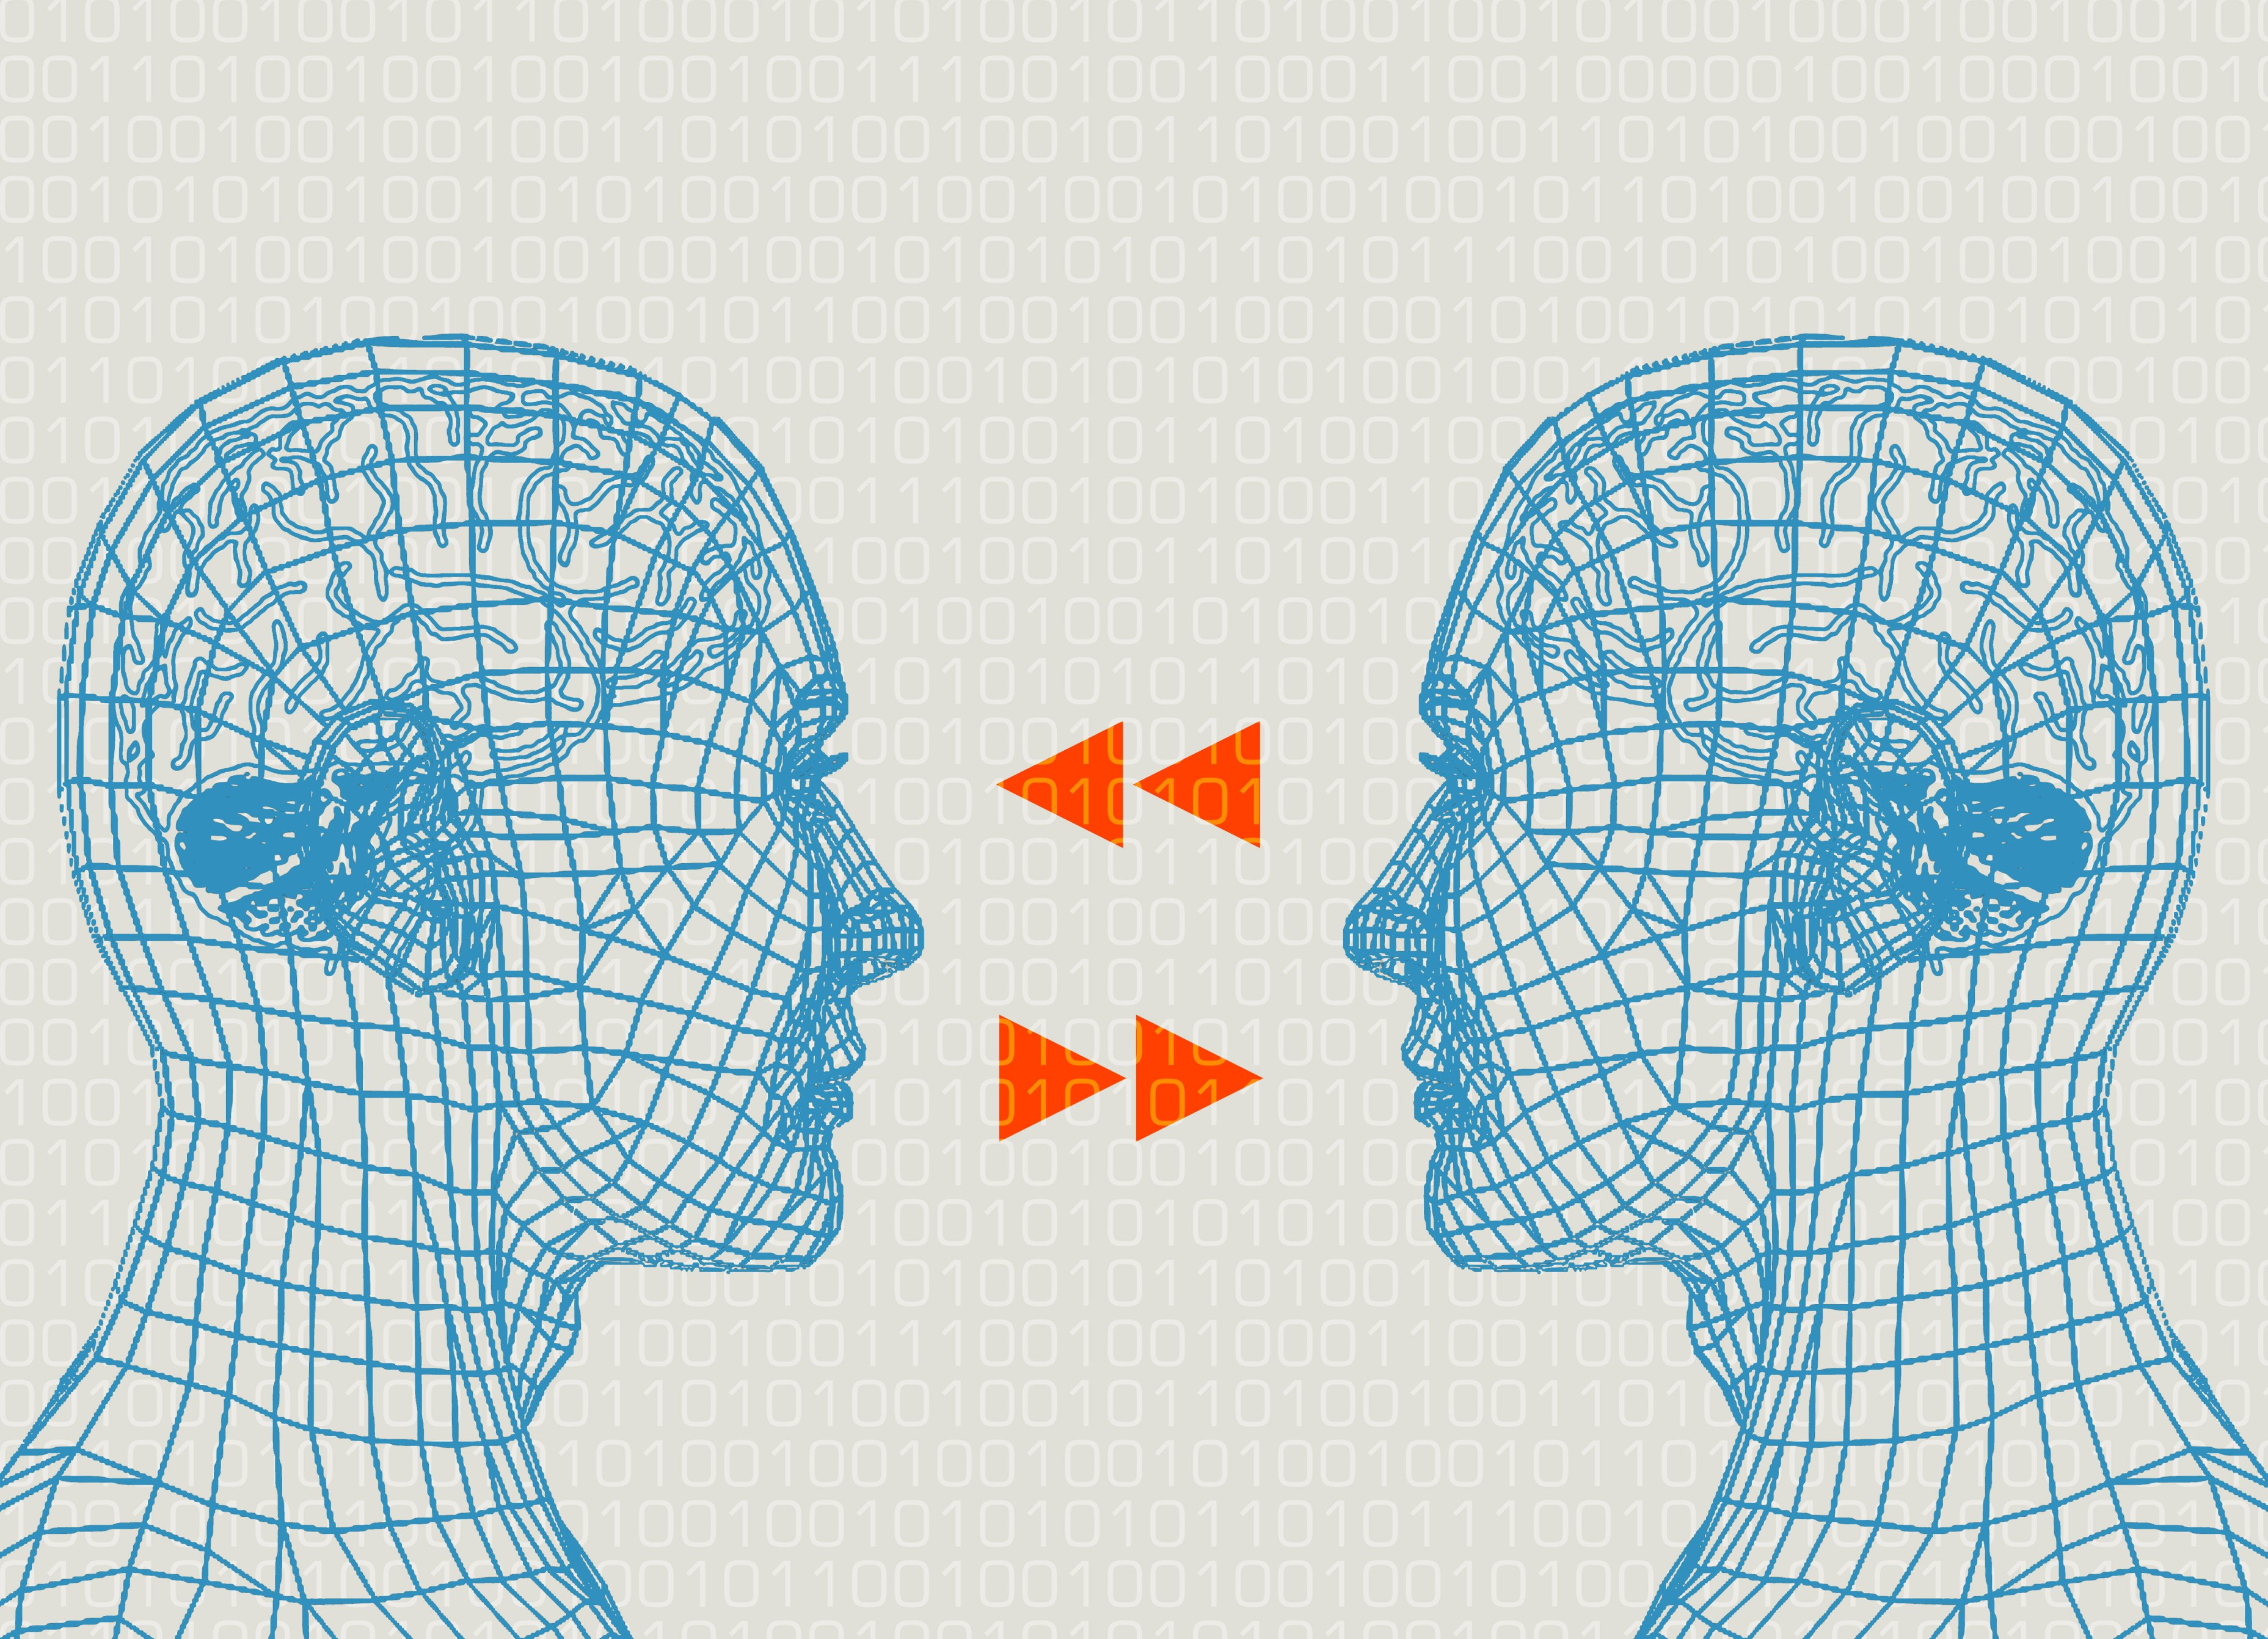 Daniel Goleman on The Neural Power of Leadership